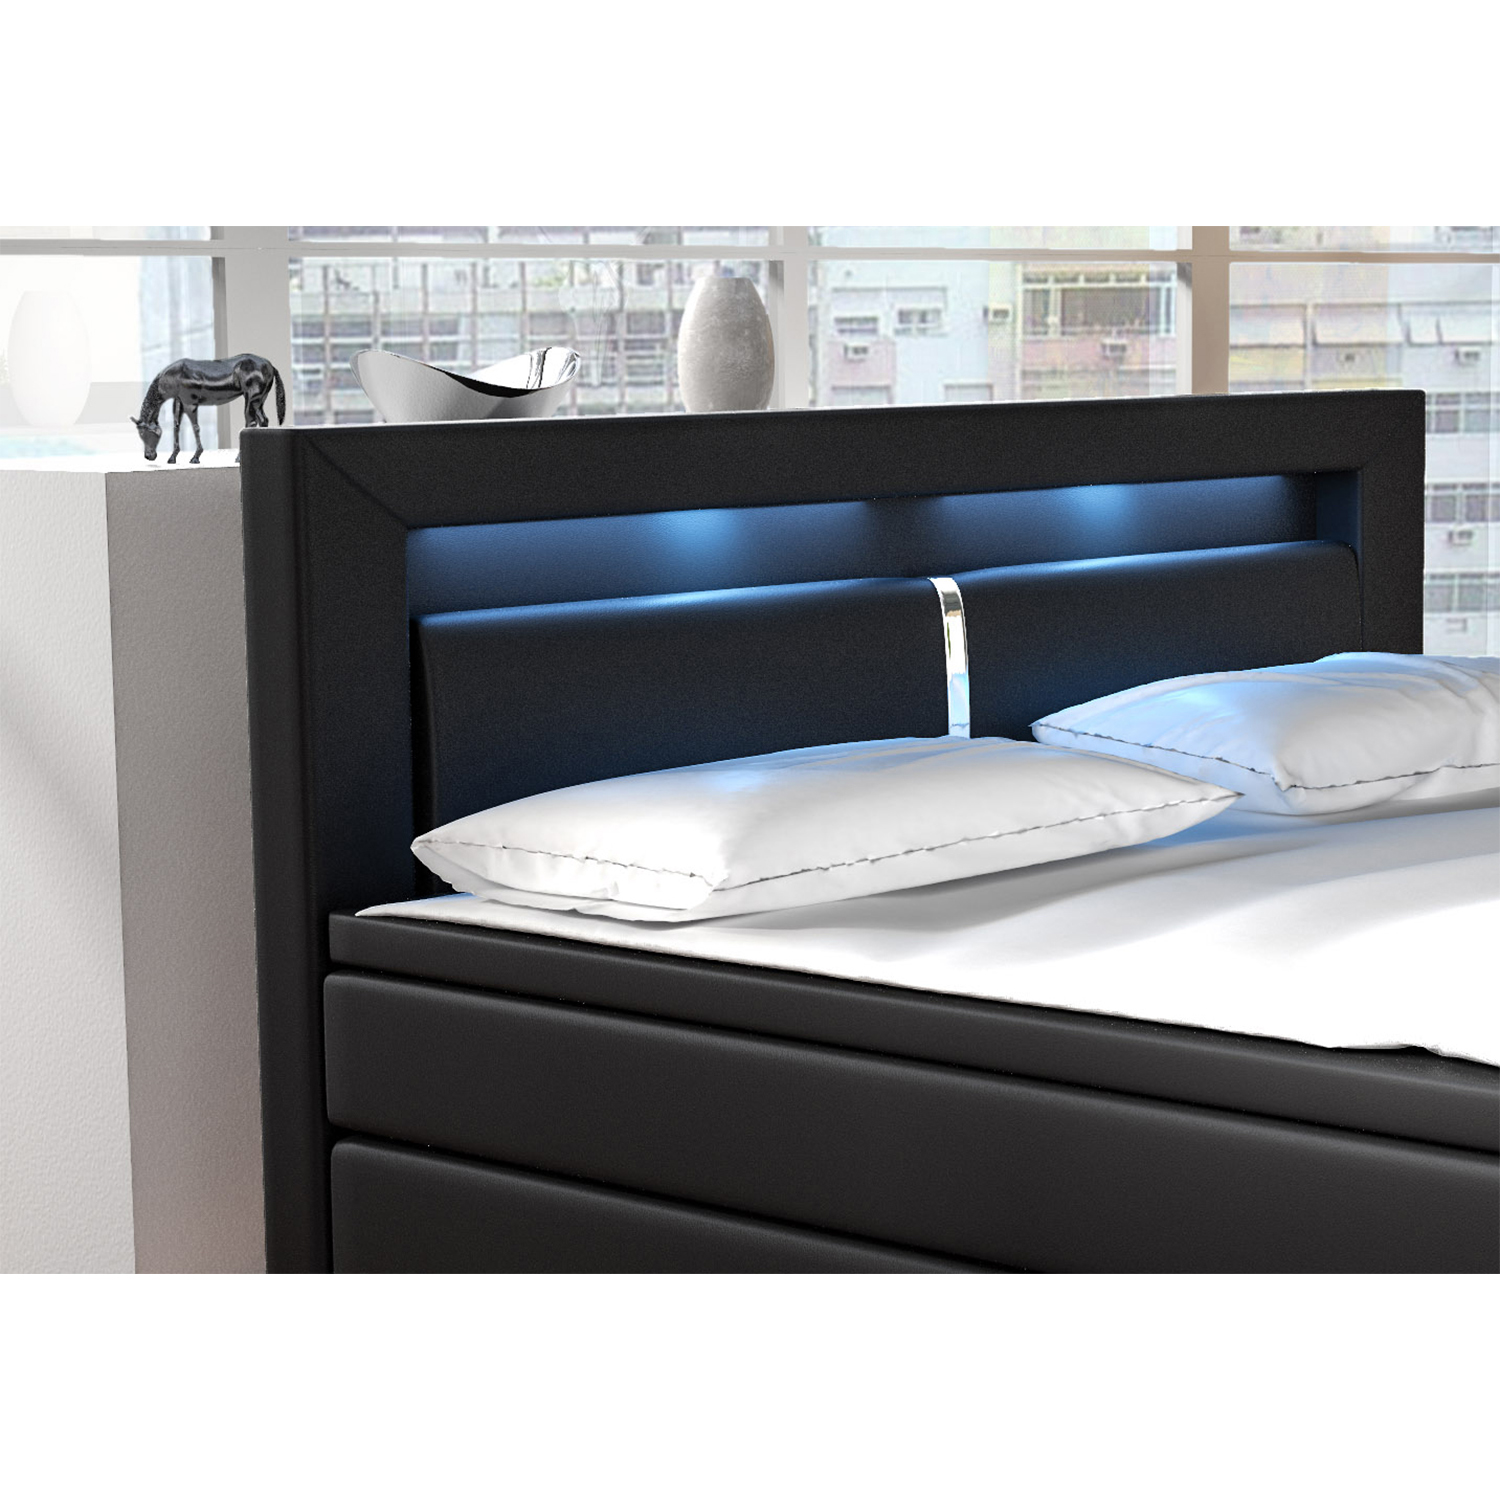 boxspringbett hotelbett ehebett led federkern topper kunstleder design artlife ebay. Black Bedroom Furniture Sets. Home Design Ideas